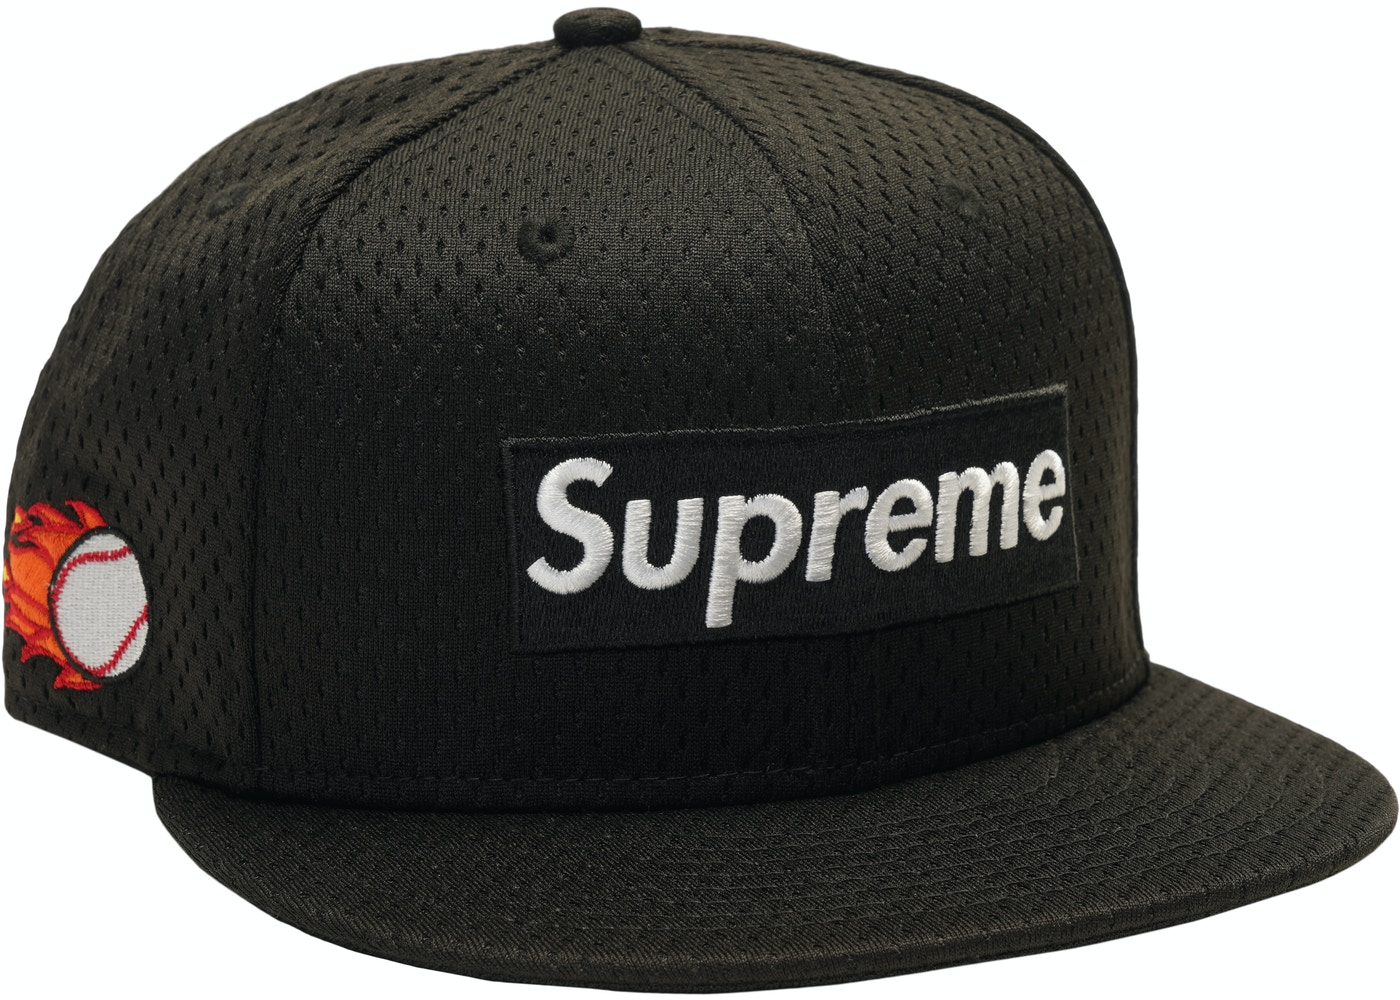 08f2e78a7c1d2 Supreme New Era Mesh Box Logo Cap Black - SS18